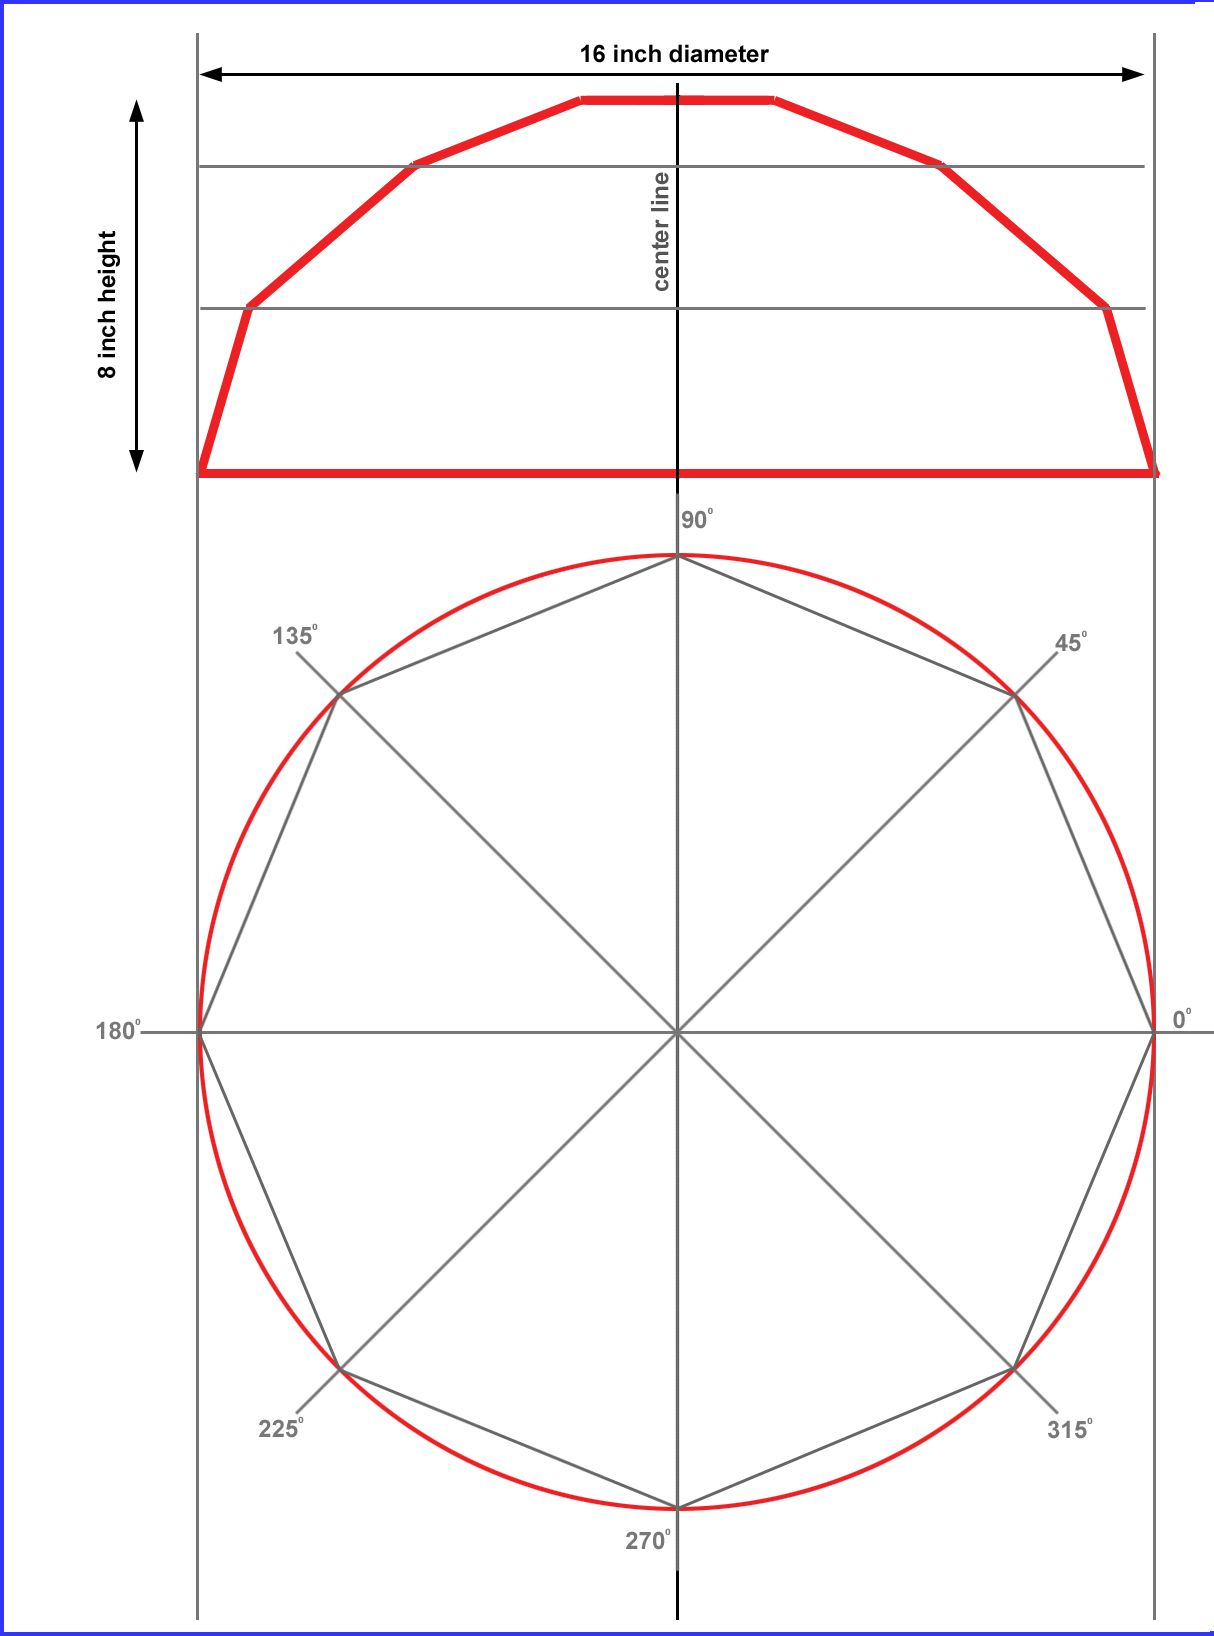 designing a stained glass lamp Fig B | de todo | Pinterest ...